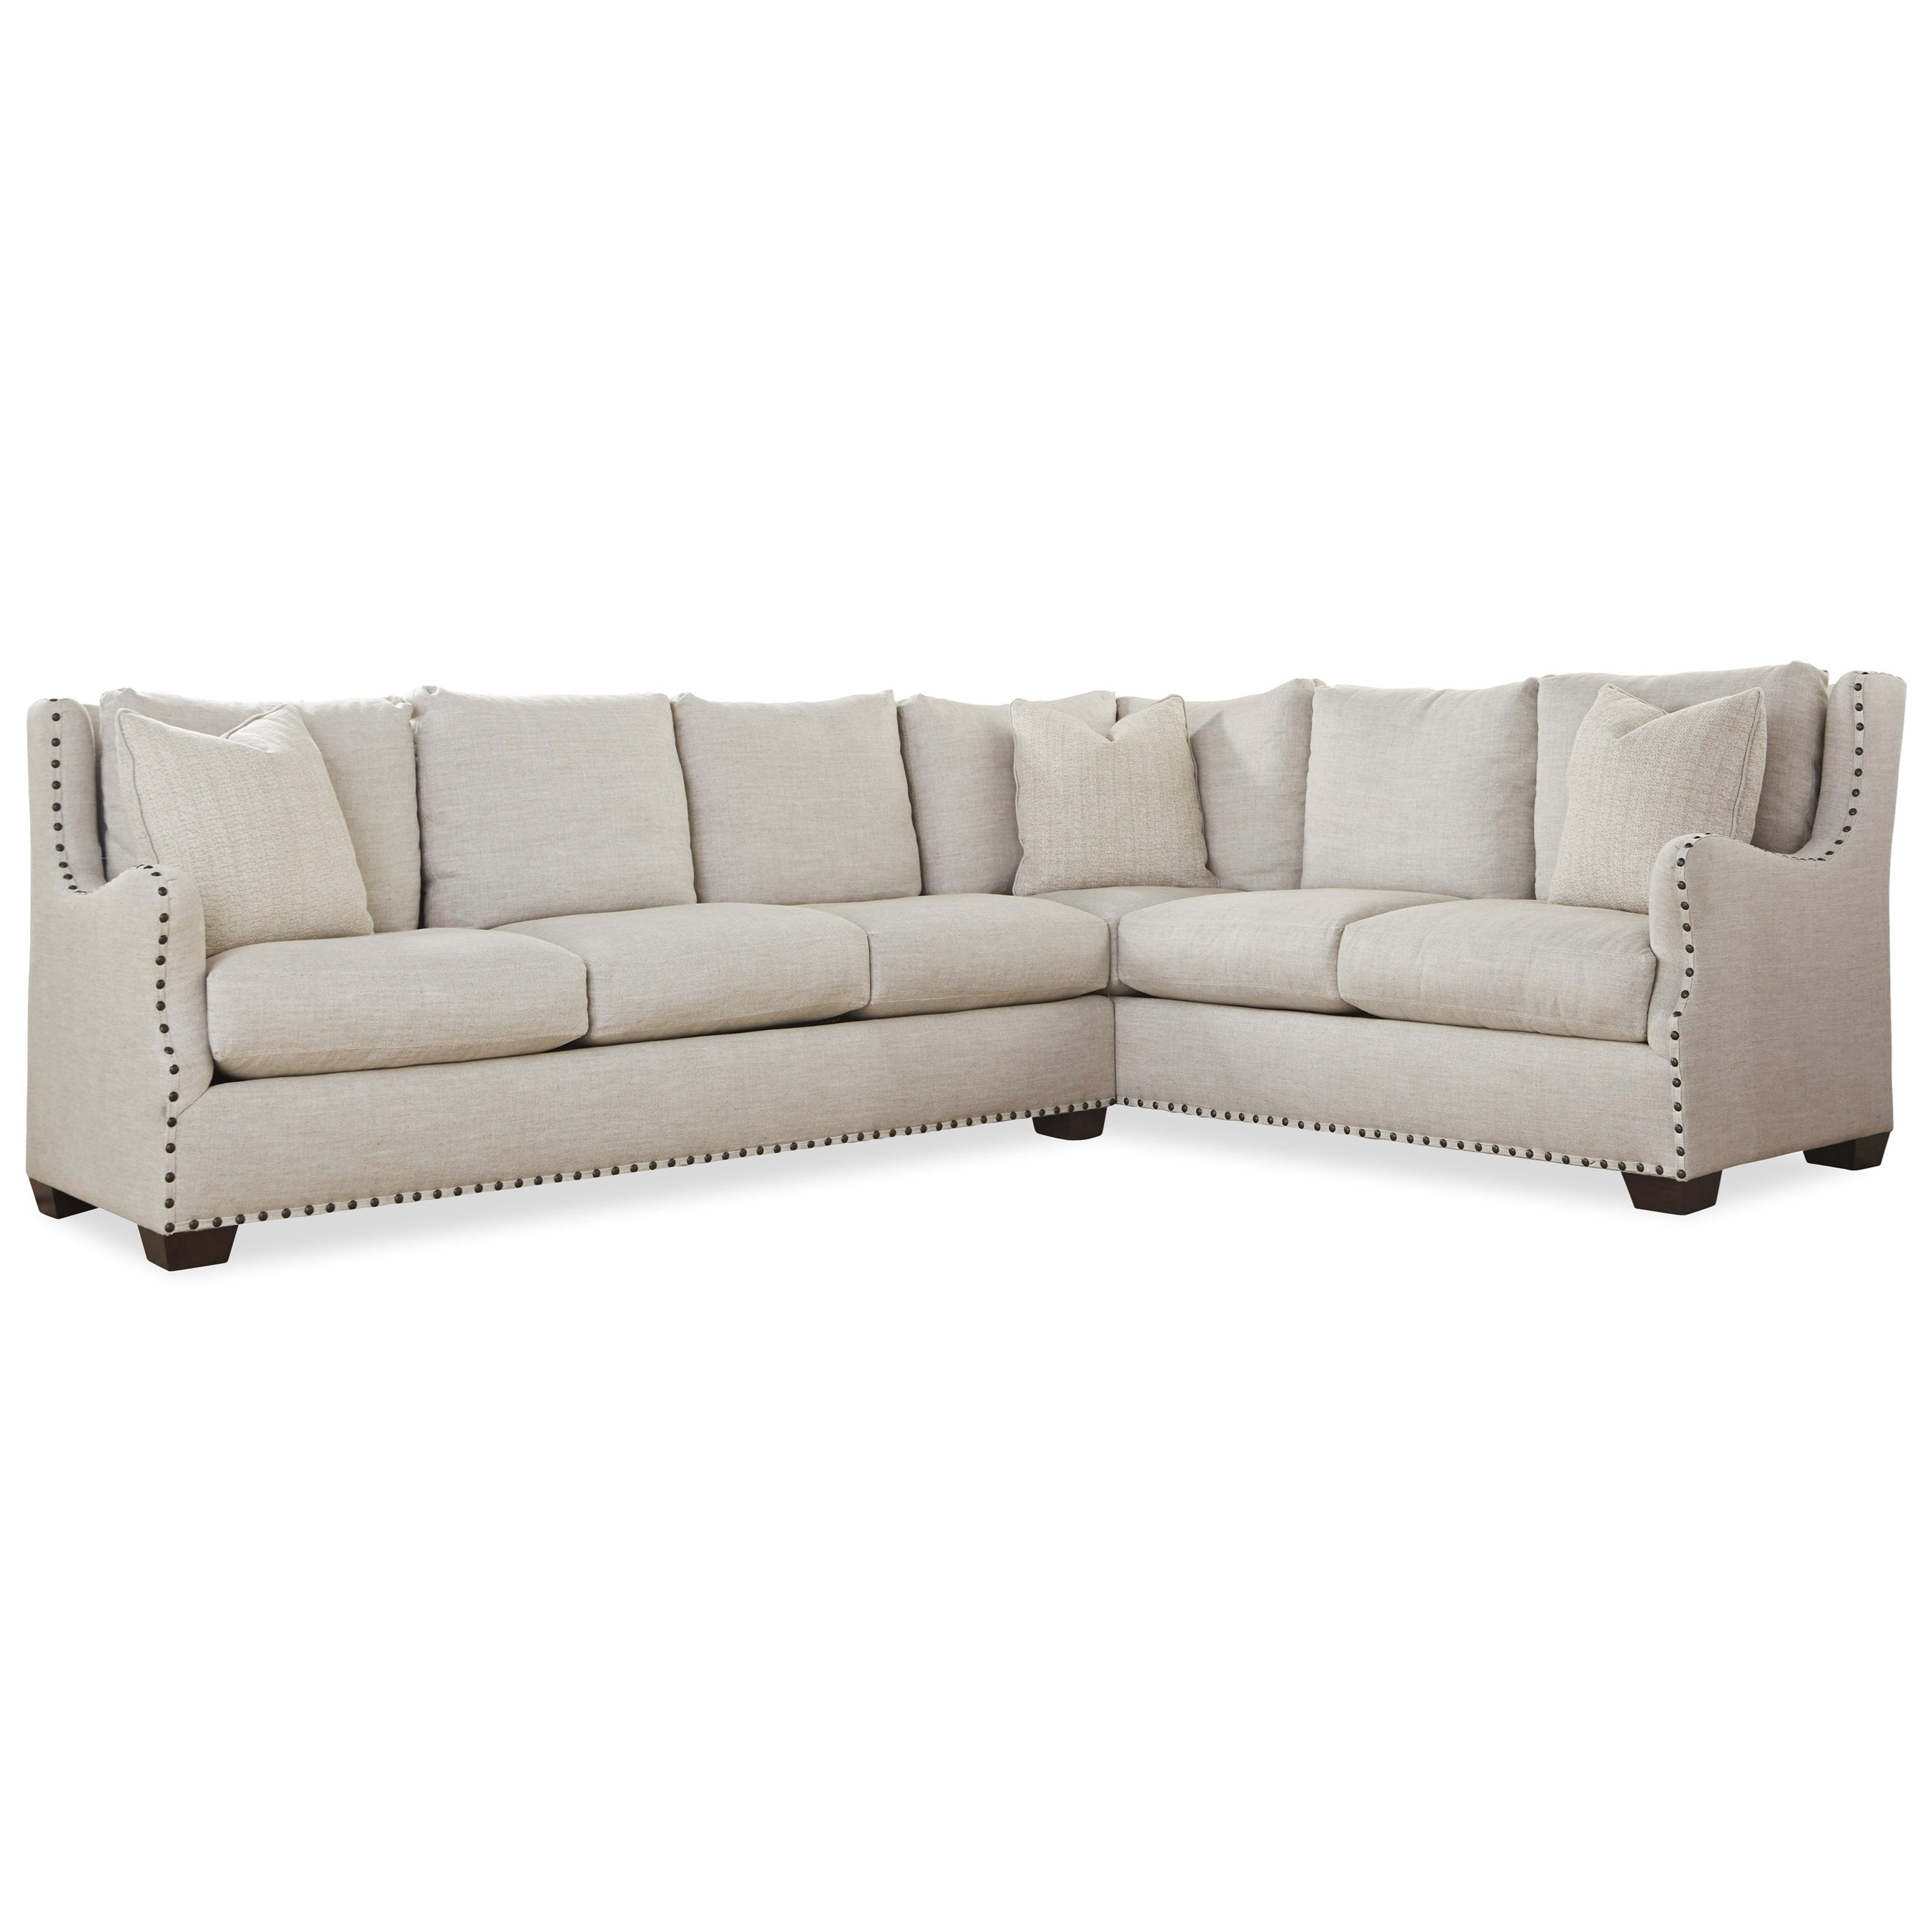 Charmant Universal ConnorSectional Sofa ...